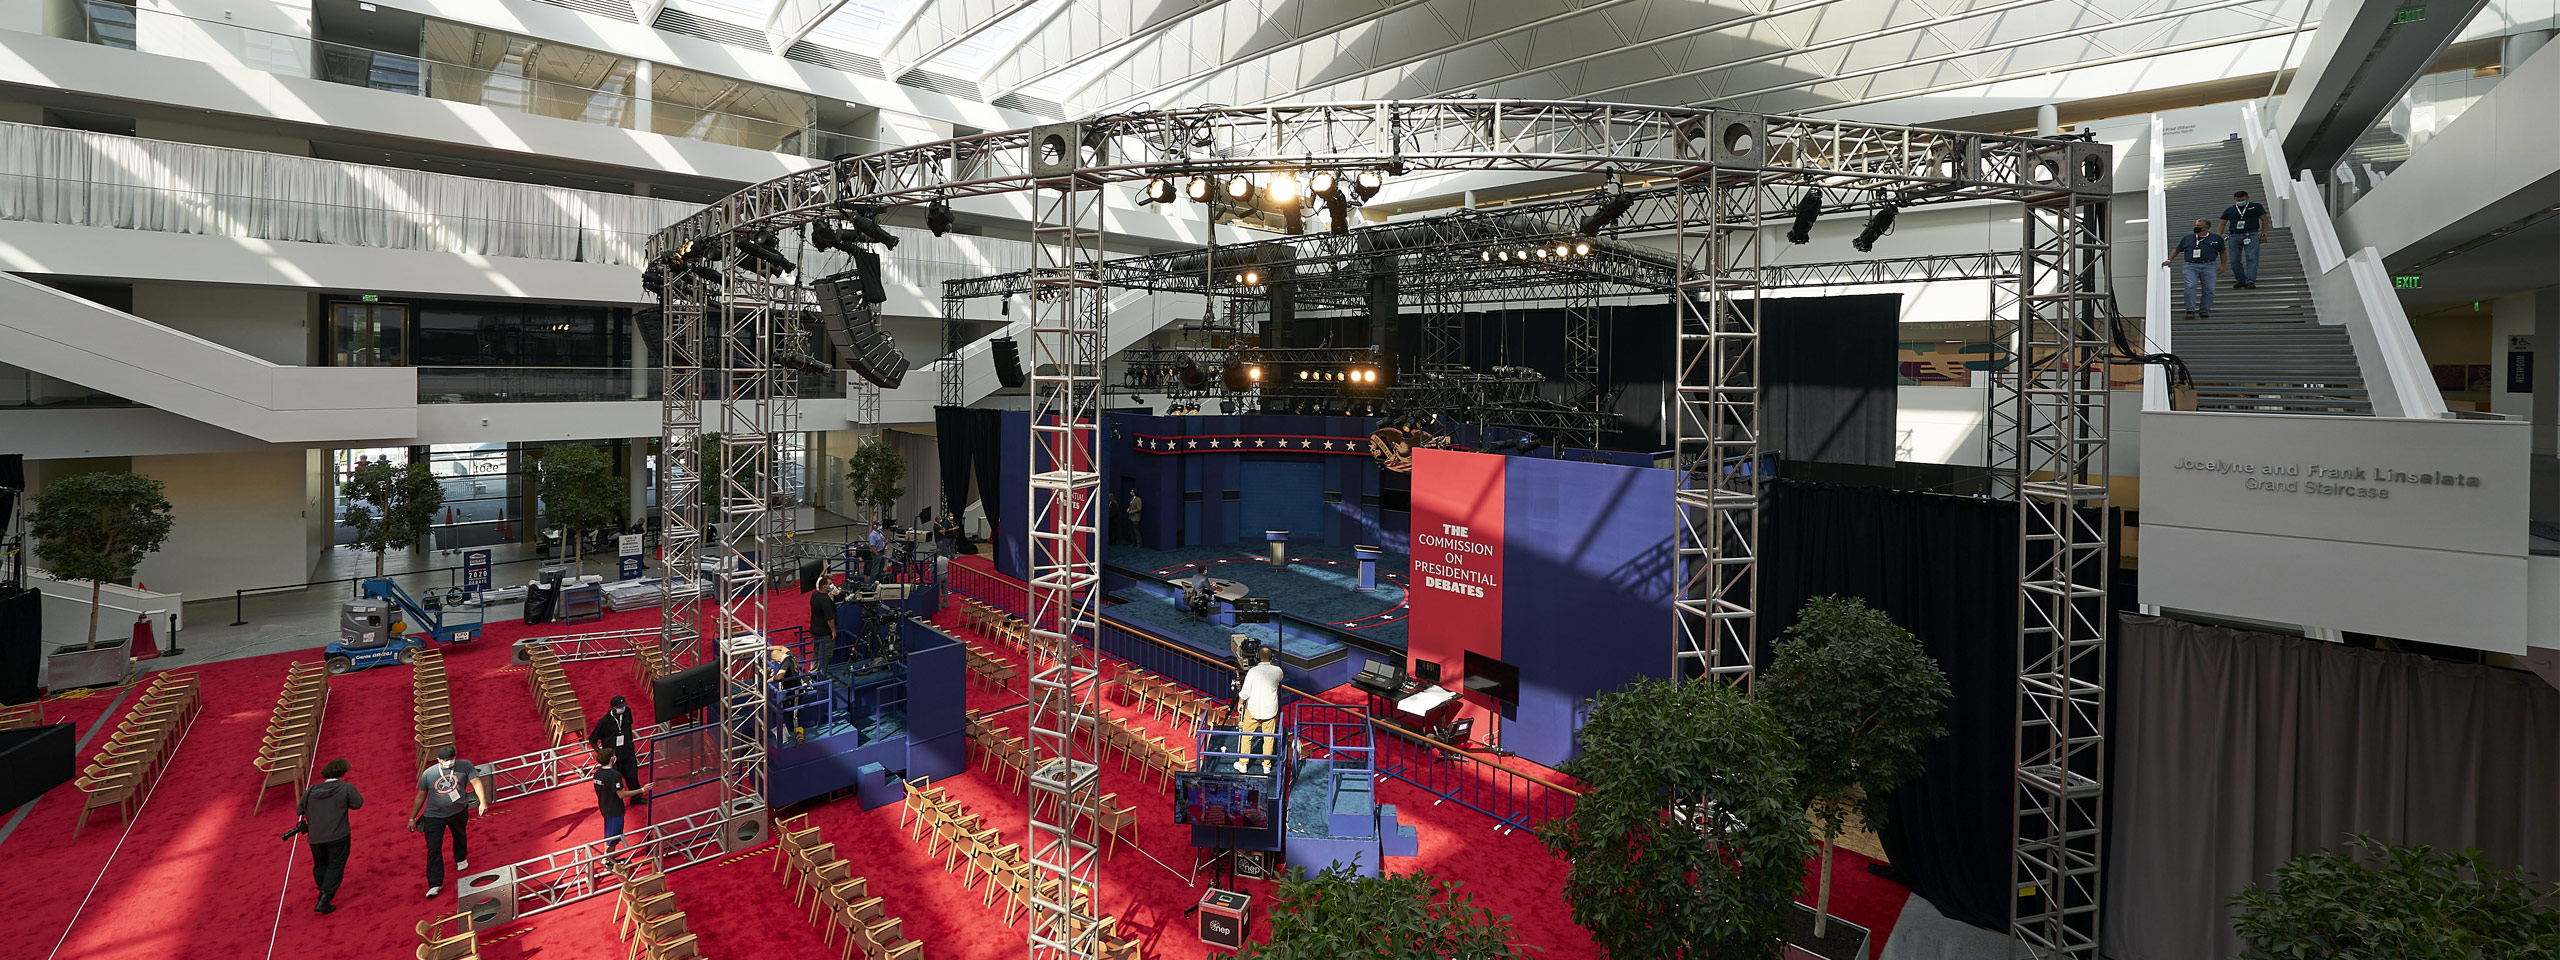 Photo of the interior of the courtyard of the Samson Pavilion with red carpeting lining the floor, the stage set for the debate and trees in planters lining the area